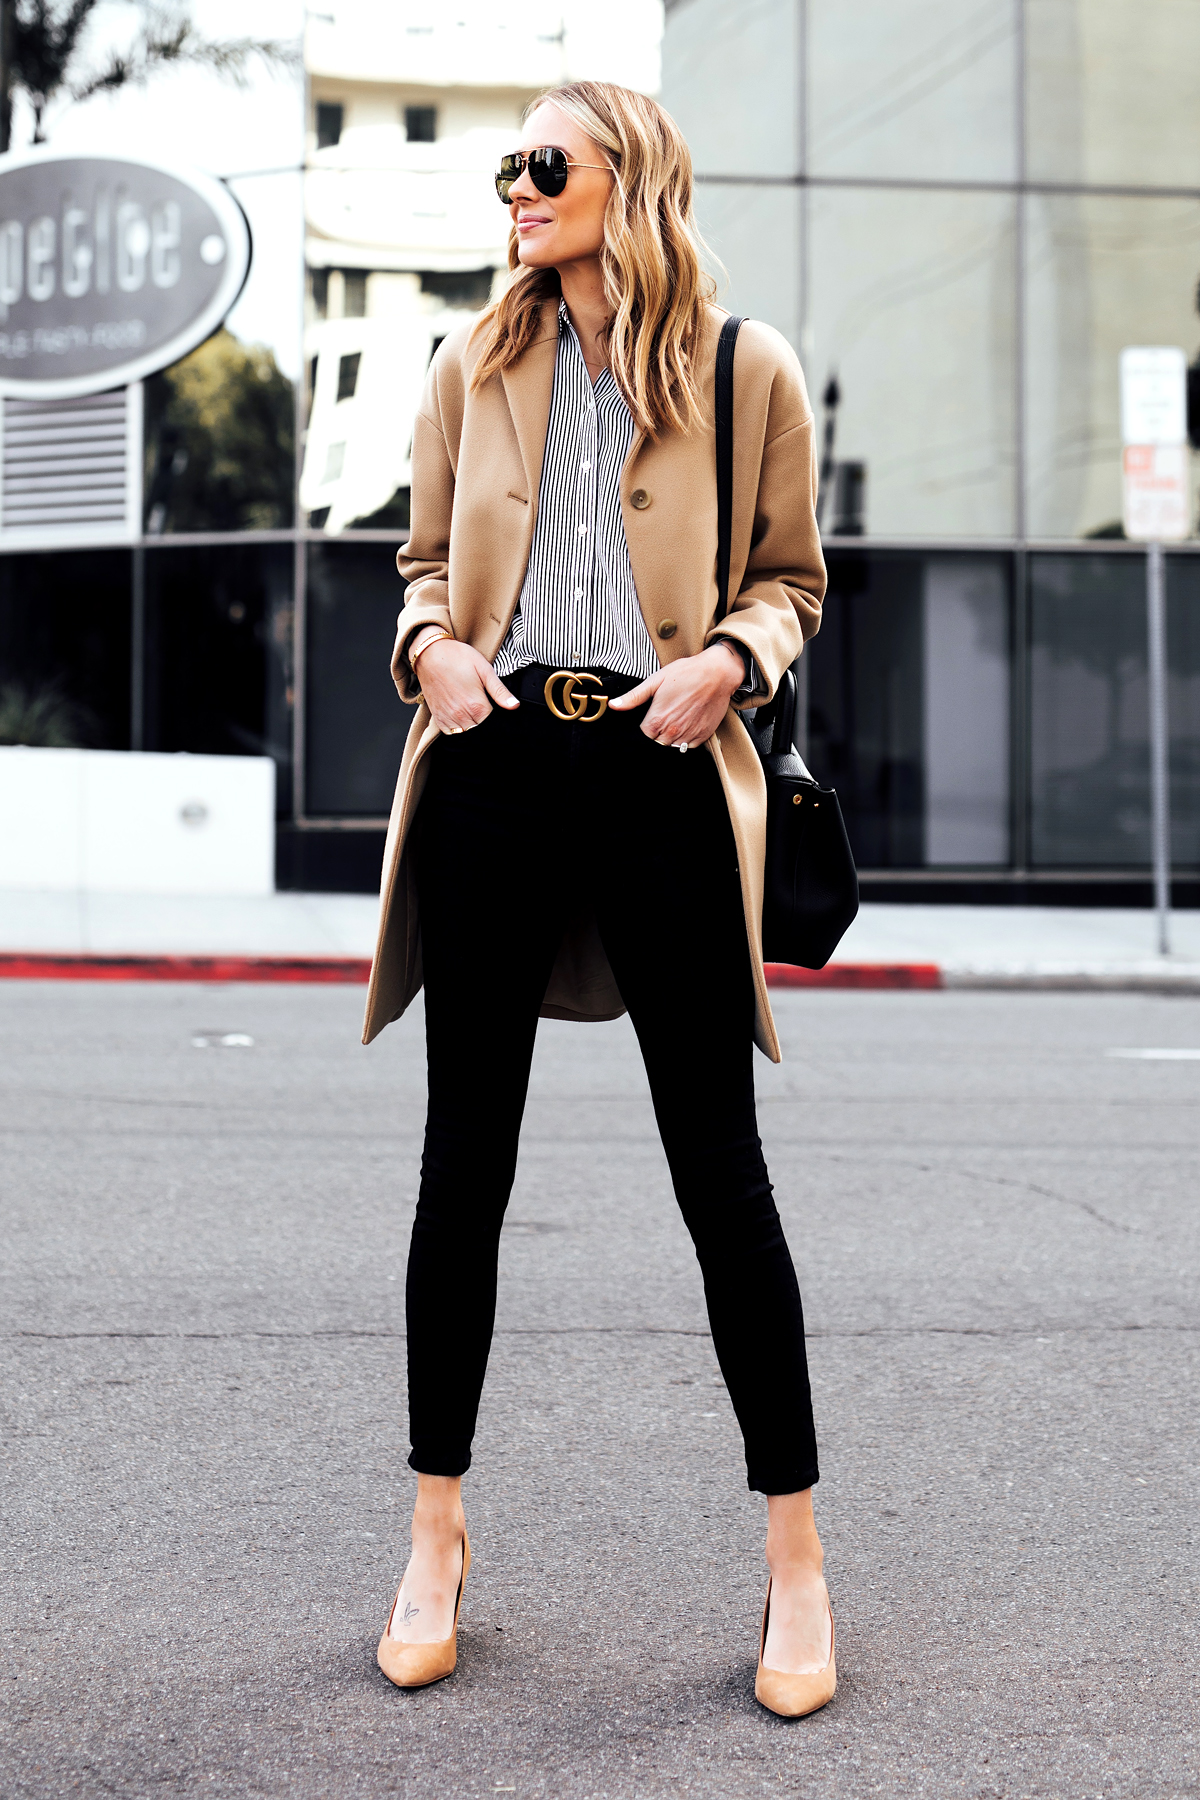 Blonde Woman Wearing Everlane Camel Coat Black White Stripe Button Down Shirt Black Skinny Jeans Black Gucci Belt Tan Pumps Fashion Jackson San Diego Fashion Blogger Street Style